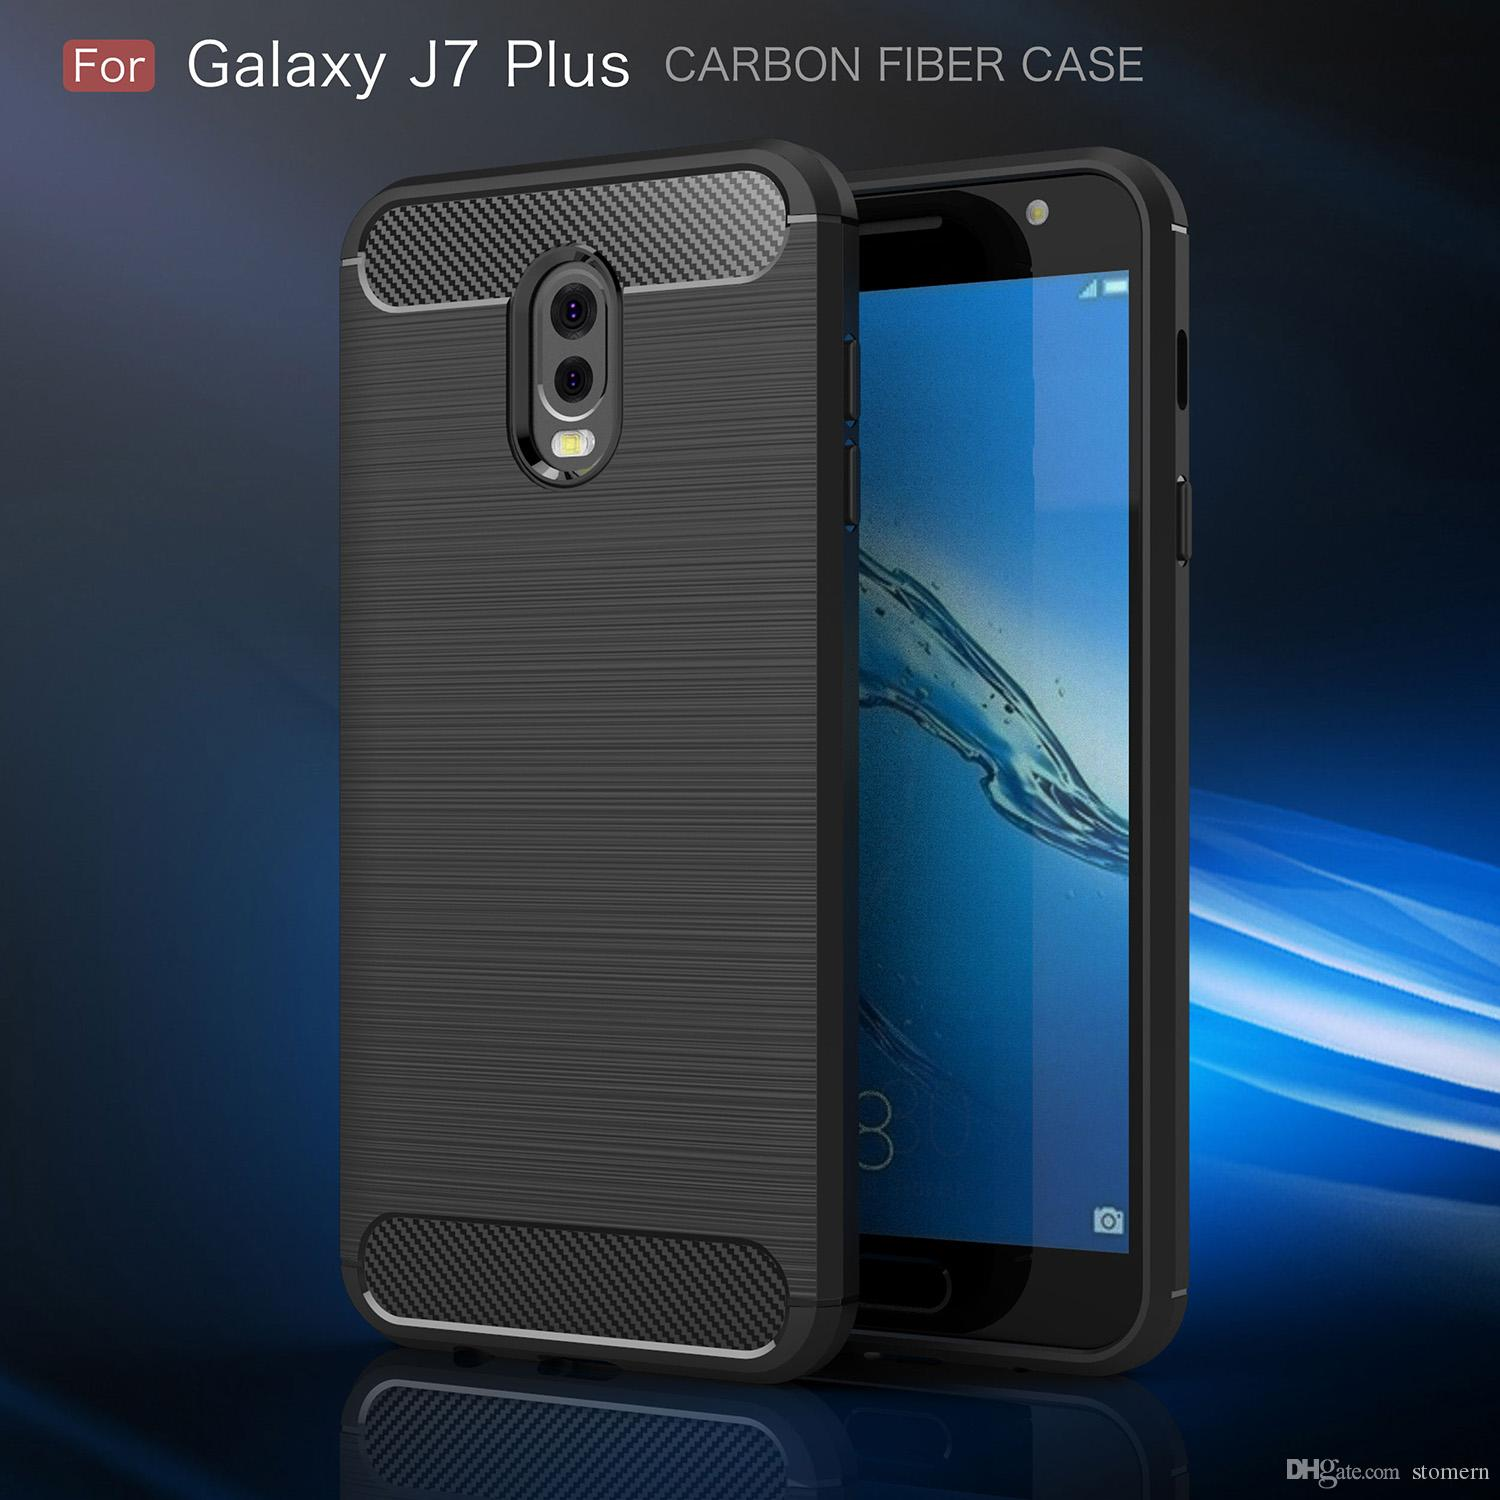 competitive price f4ee9 d92f6 Carbon Fiber Case For Samsung Galaxy J7 Plus J5 J7 2015 2017 J510 J710 2016  Prime ON5 ON7 Brushed Silicone Soft Rubber Back Cover